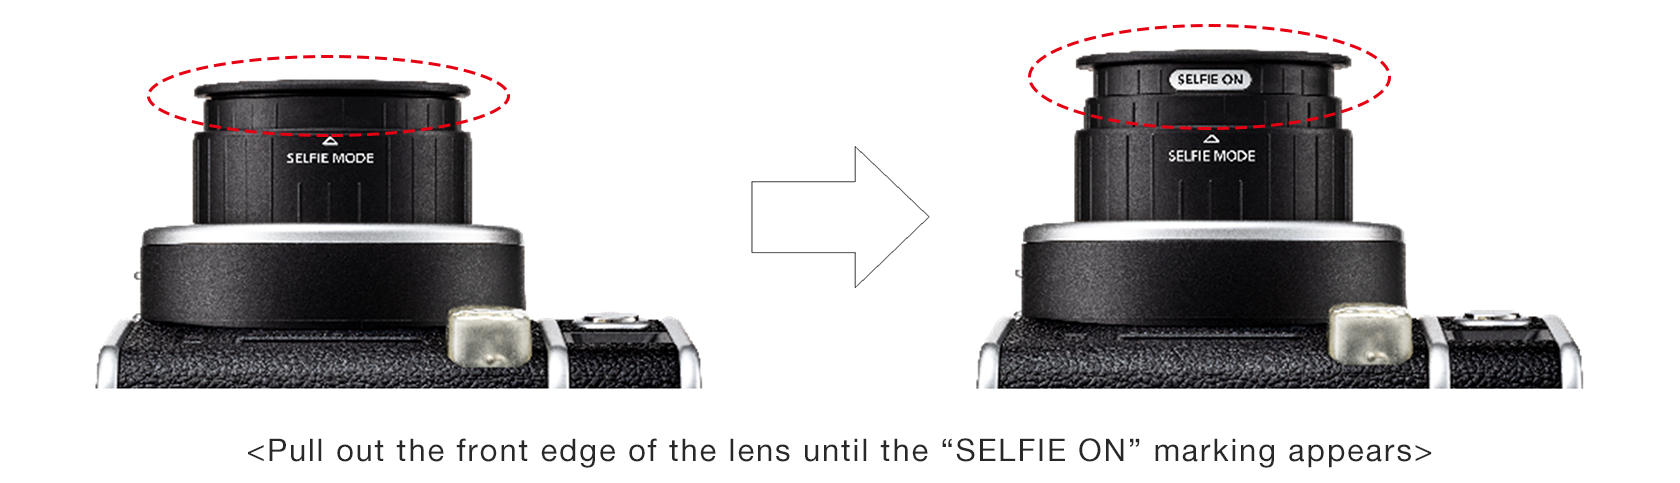 """[Image]""""Selfie Mode"""" for taking selfies and close-ups with ease"""